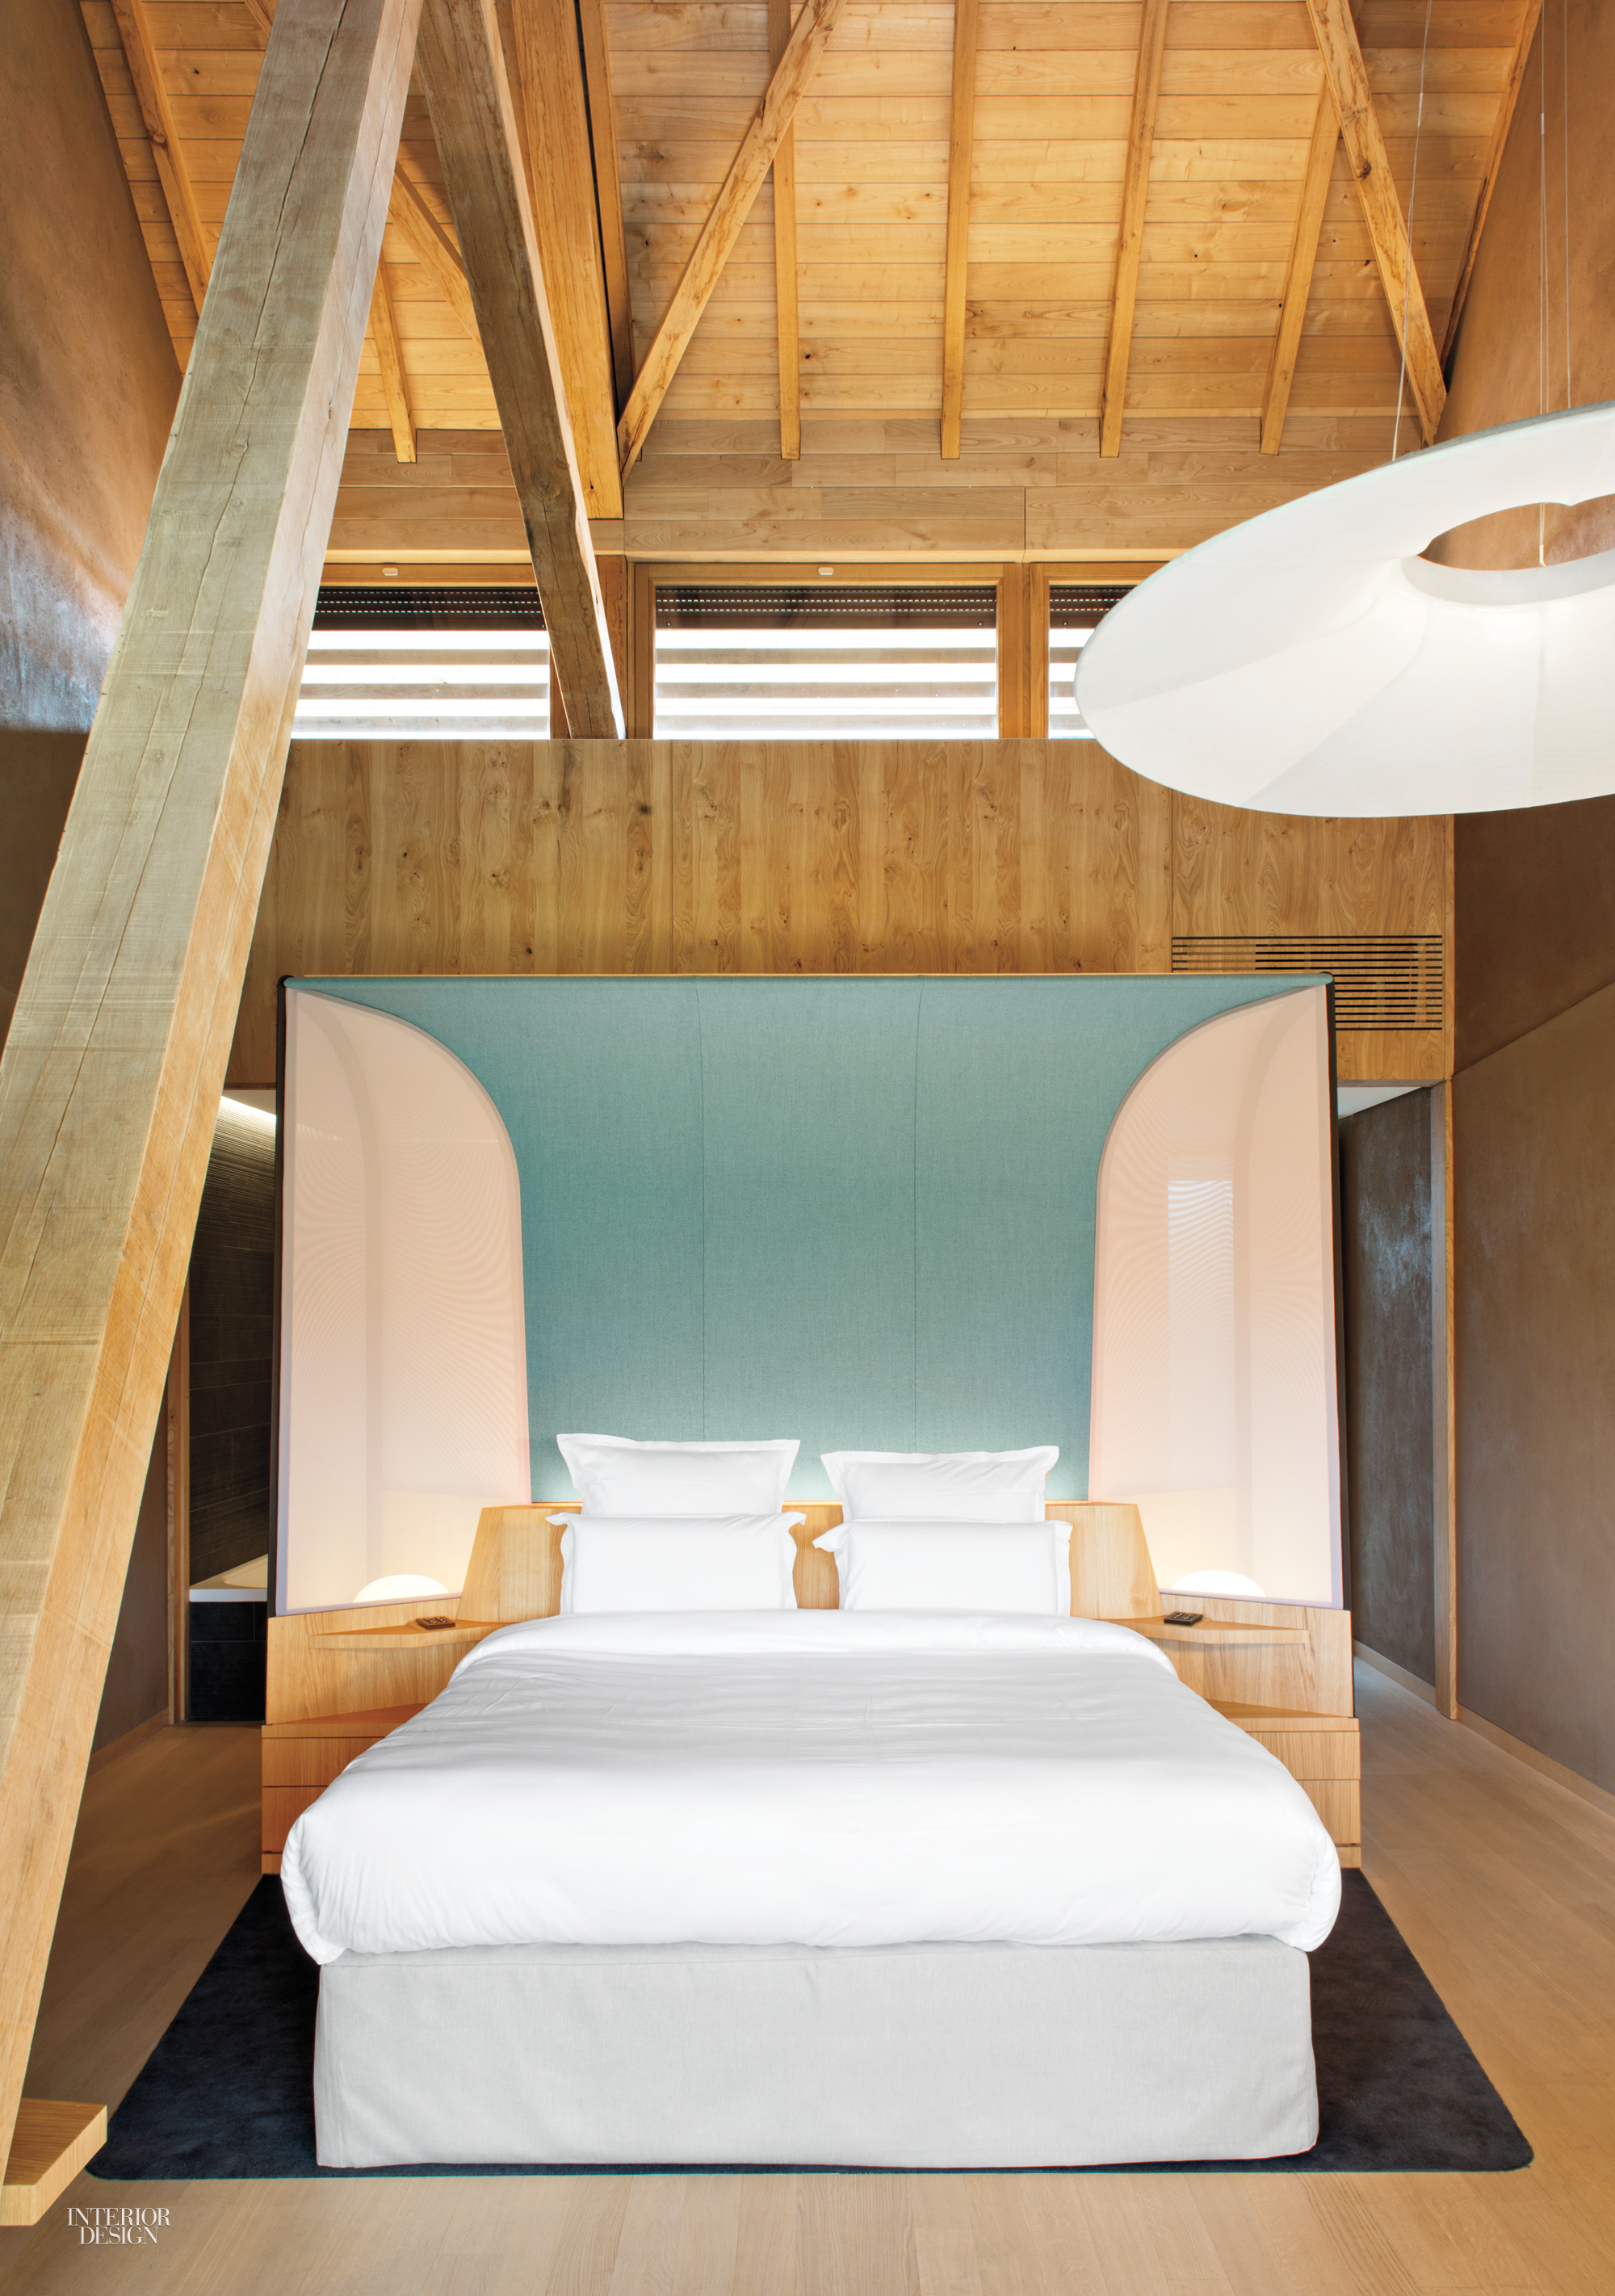 jouin manku designs sensory annex for hôtel des berges in france